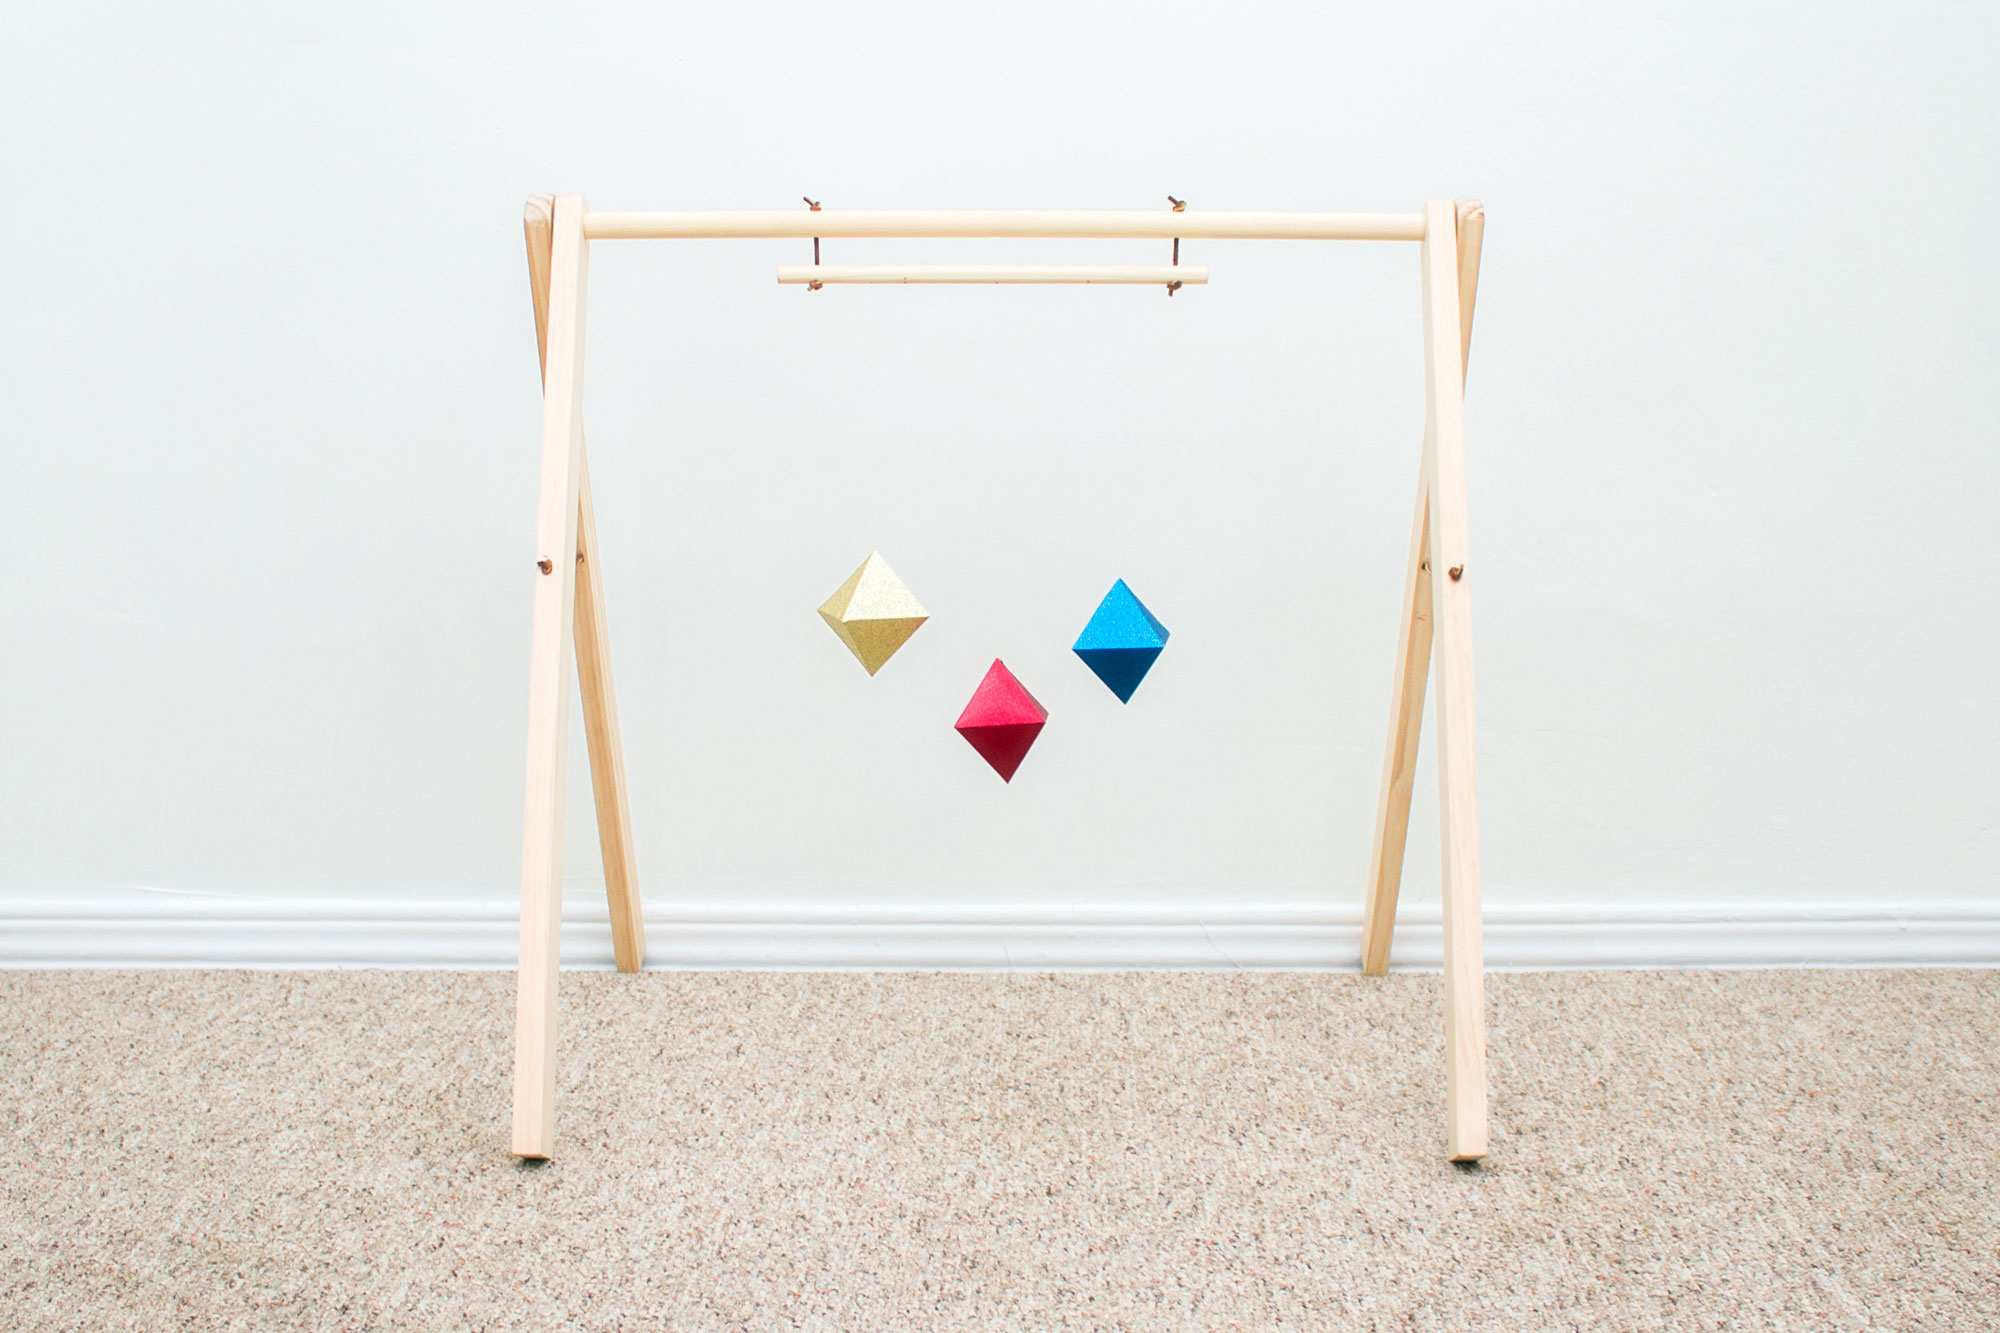 montessori-octahedron-mobile-attached-to-play-gym